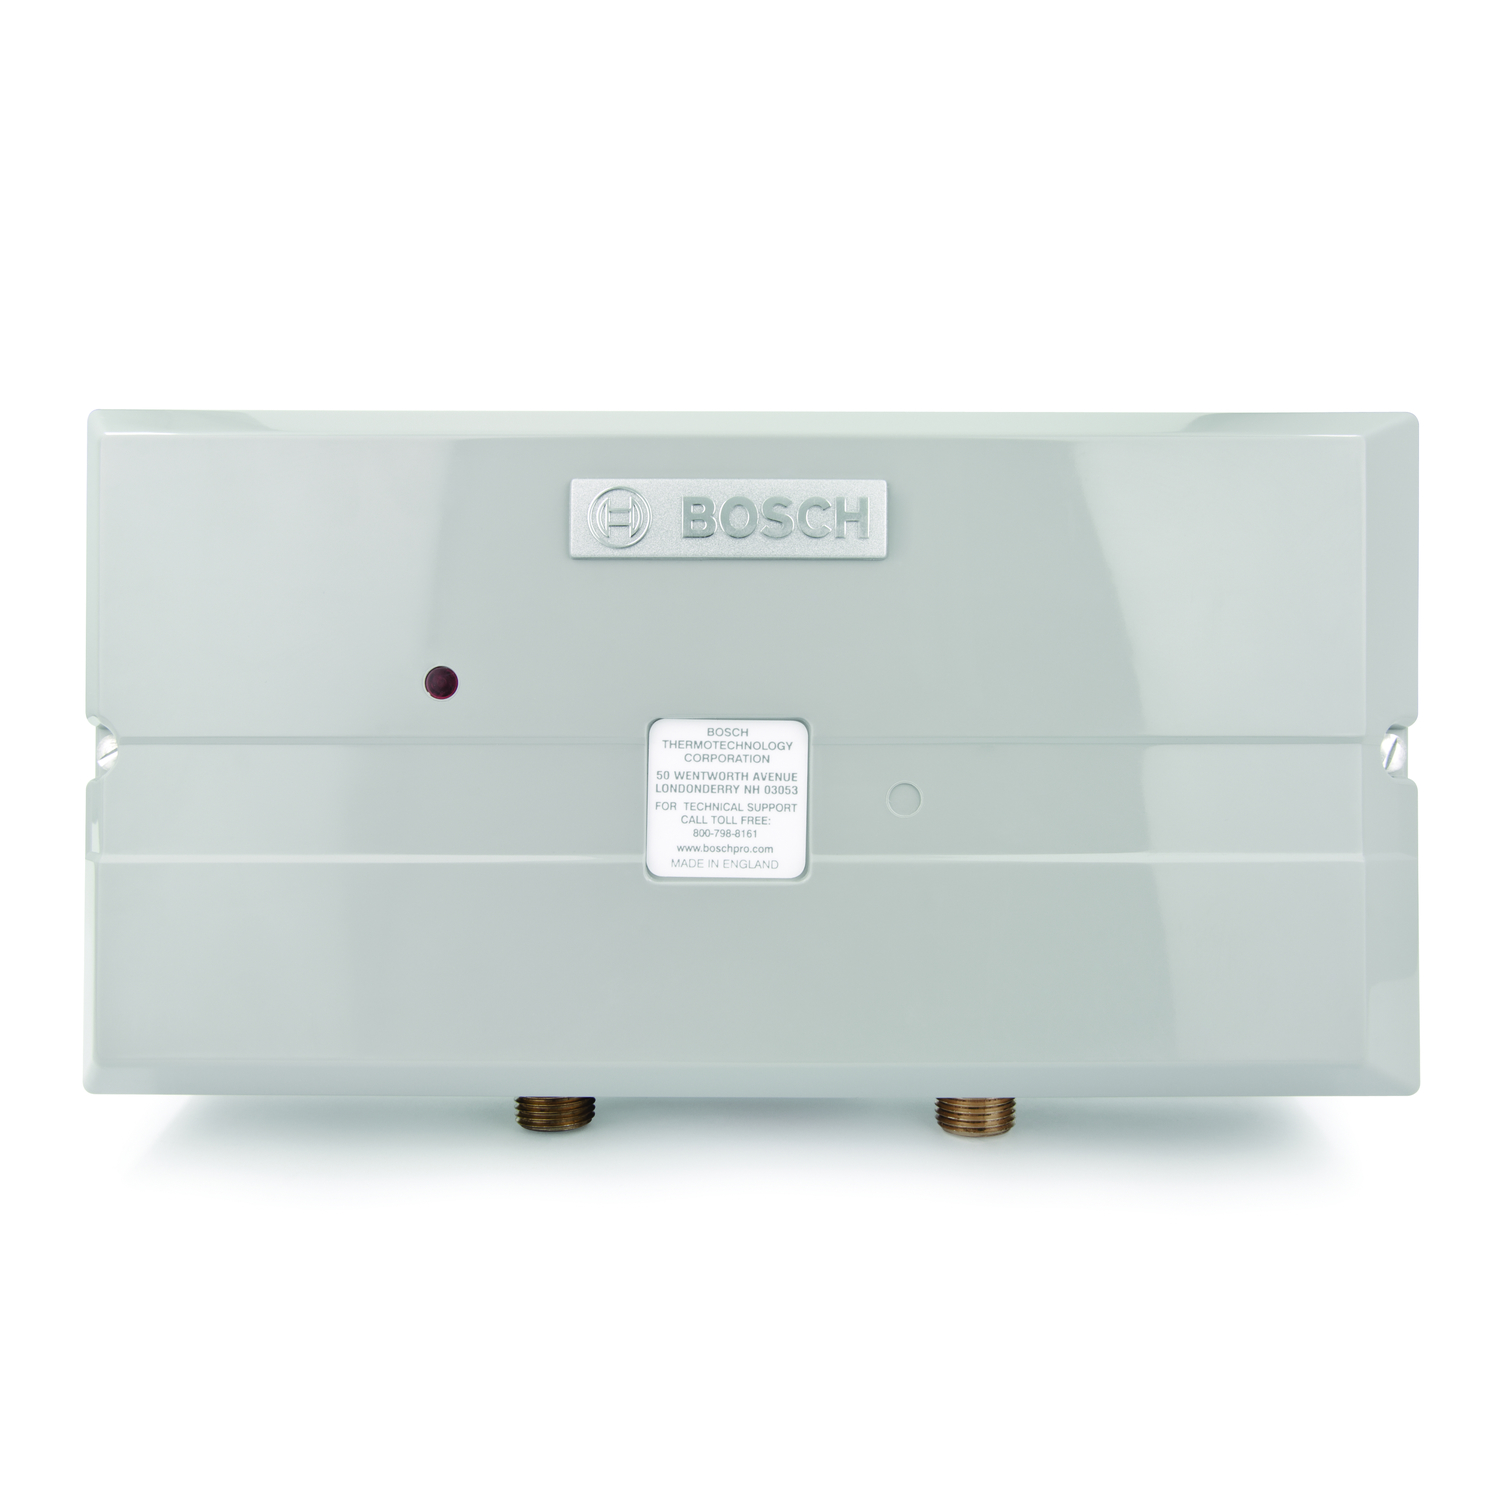 Bosch  Tronic  Electric  Tankless Water Heater  6 in. H x 3 in. L x 12 in. W